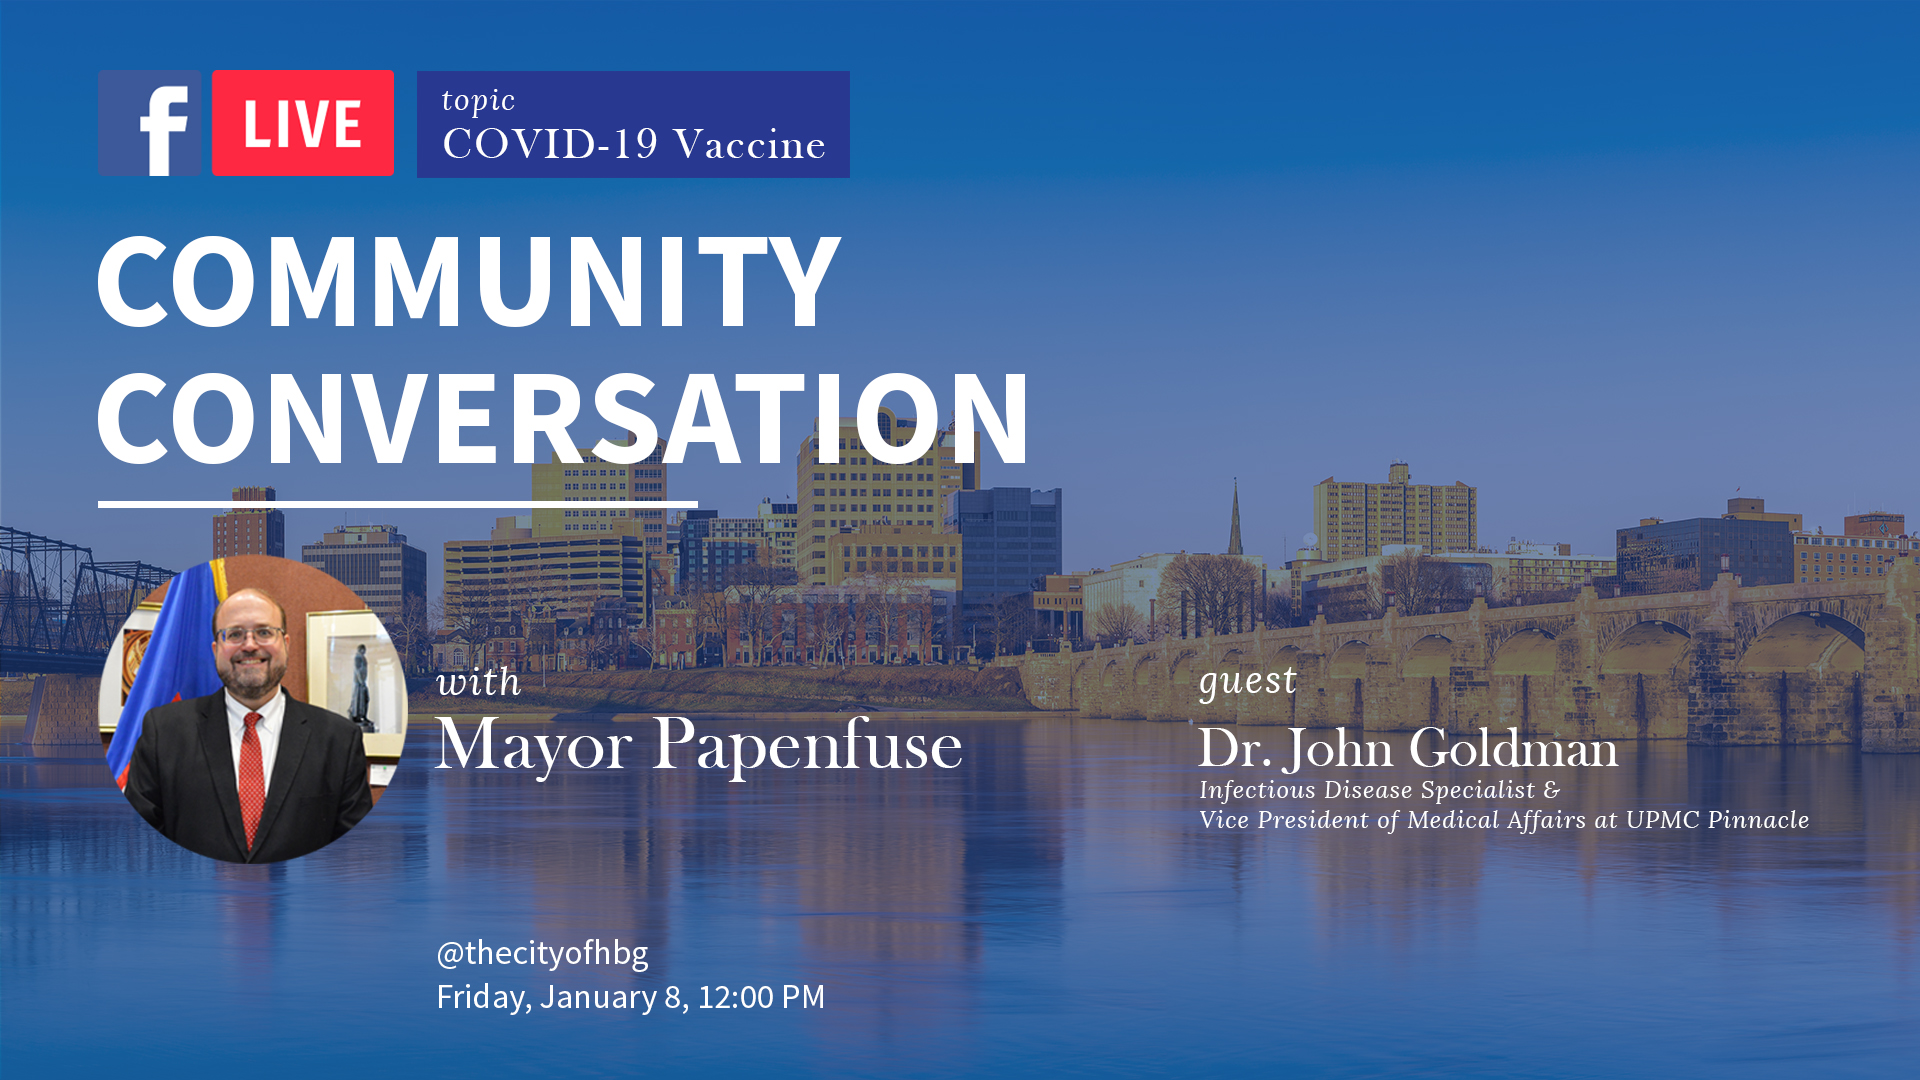 Mayor Papenfuse to Lead Live Discussion on COVID-19 Vaccine